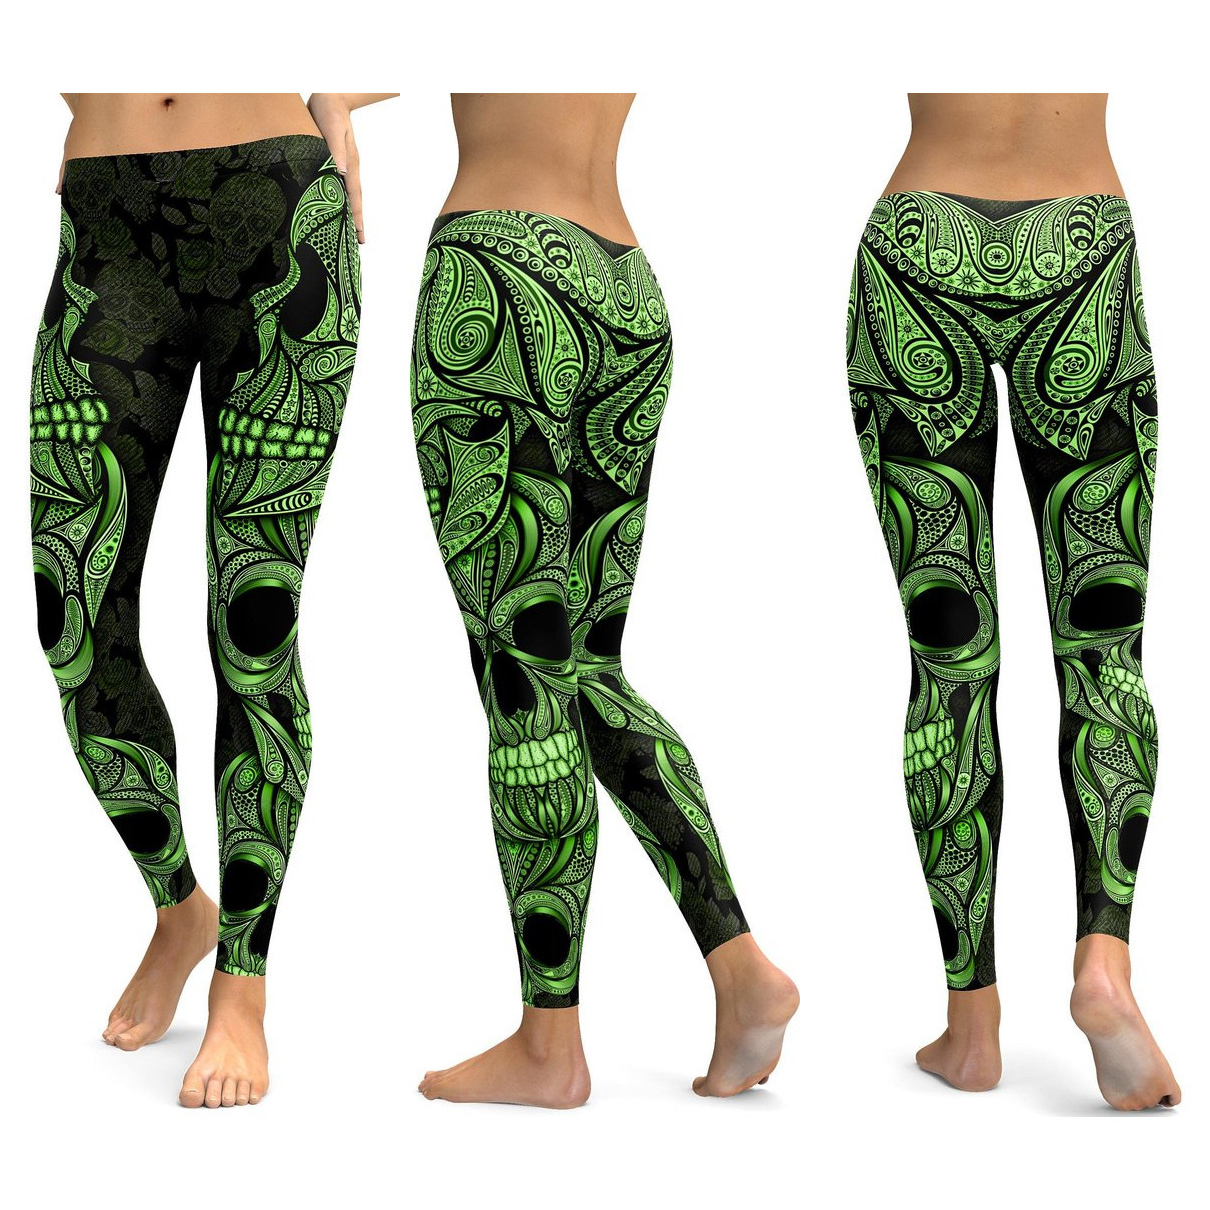 Skull Leggings Yoga Pants Women Sports Pants Fitness Running Sexy Push Up Gym Wear Elastic Slim Workout Leggings 35